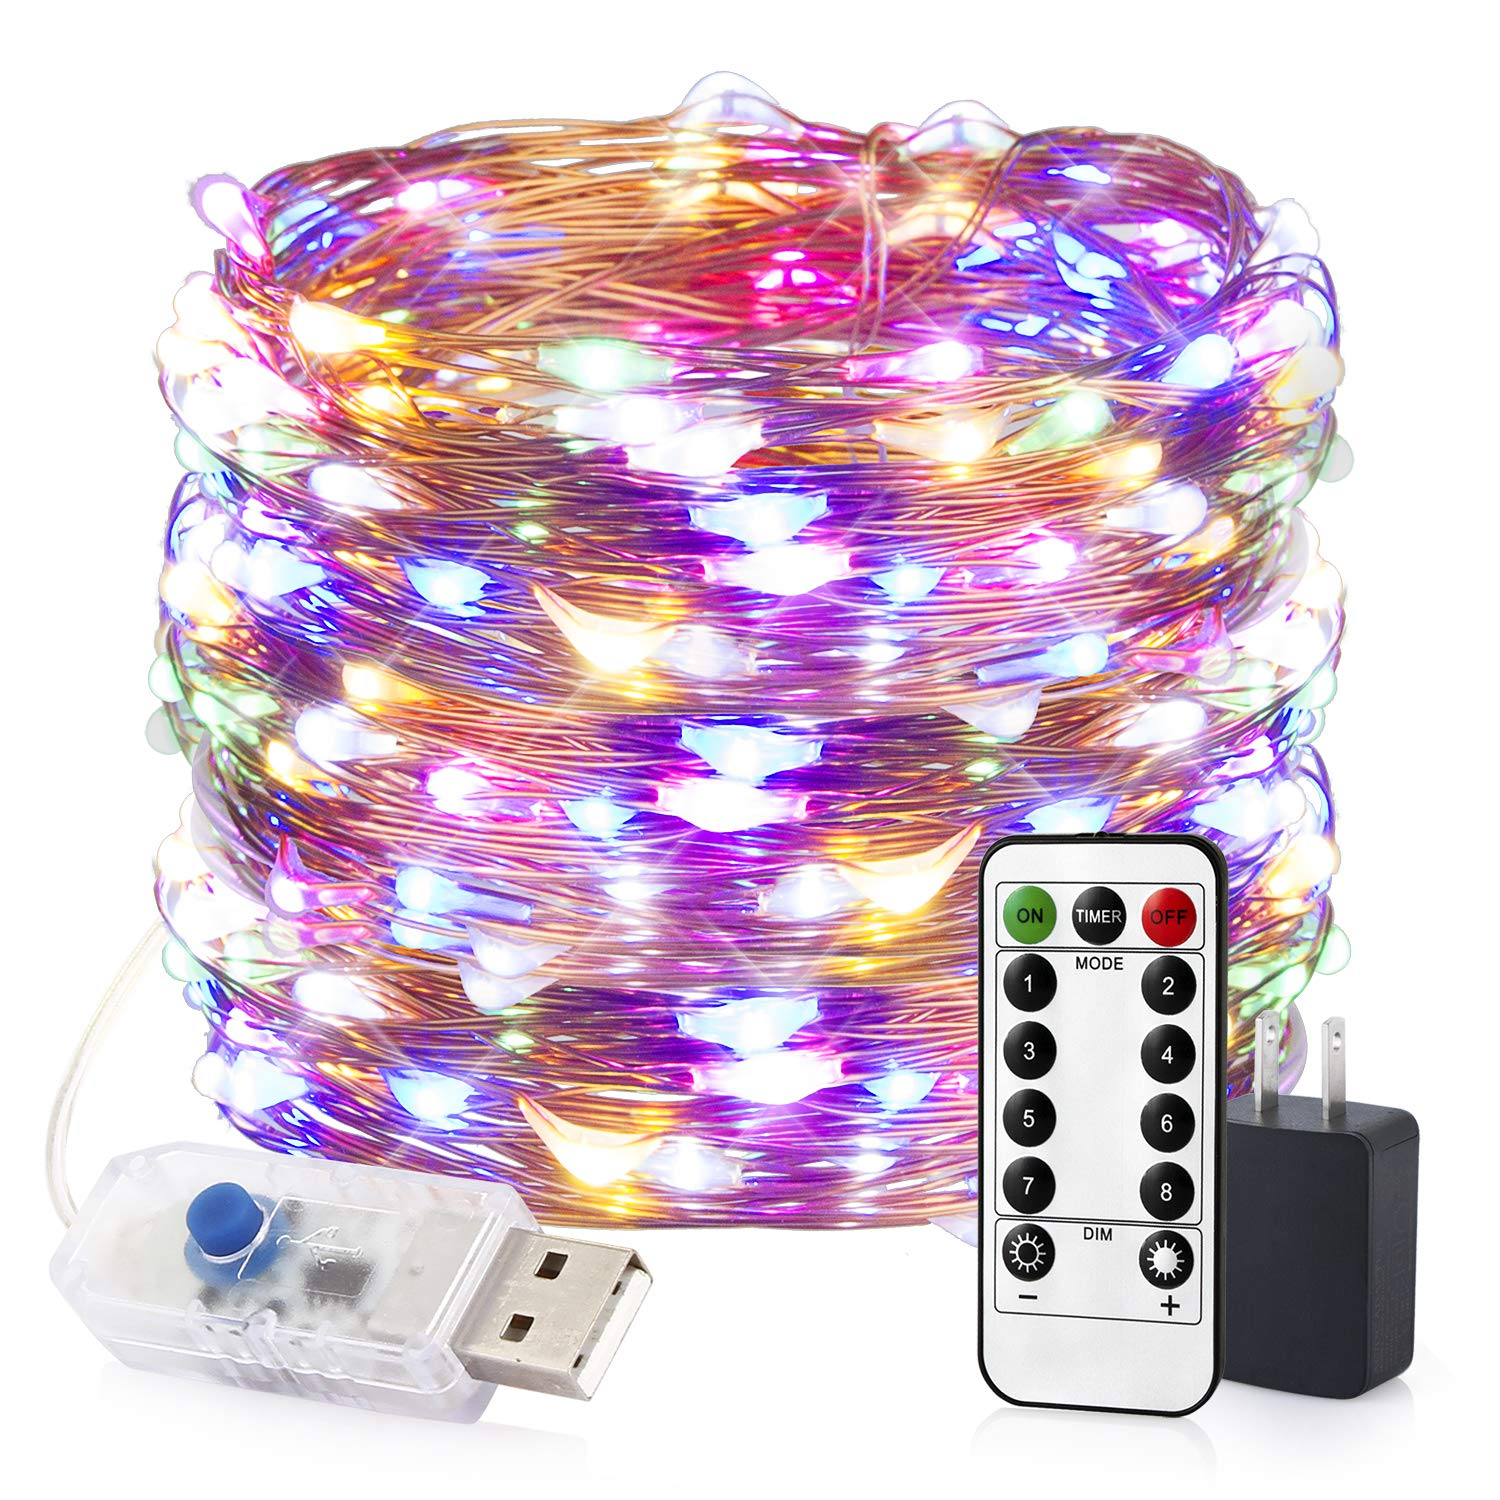 innotree LED String Lights 33ft 100 LED USB Plug in Fairy Lights 8 Modes Dimmable Copper Wire Lights with Remote Control UL Adapter for Bed Patio Parties IP65 Waterproof Multicolored